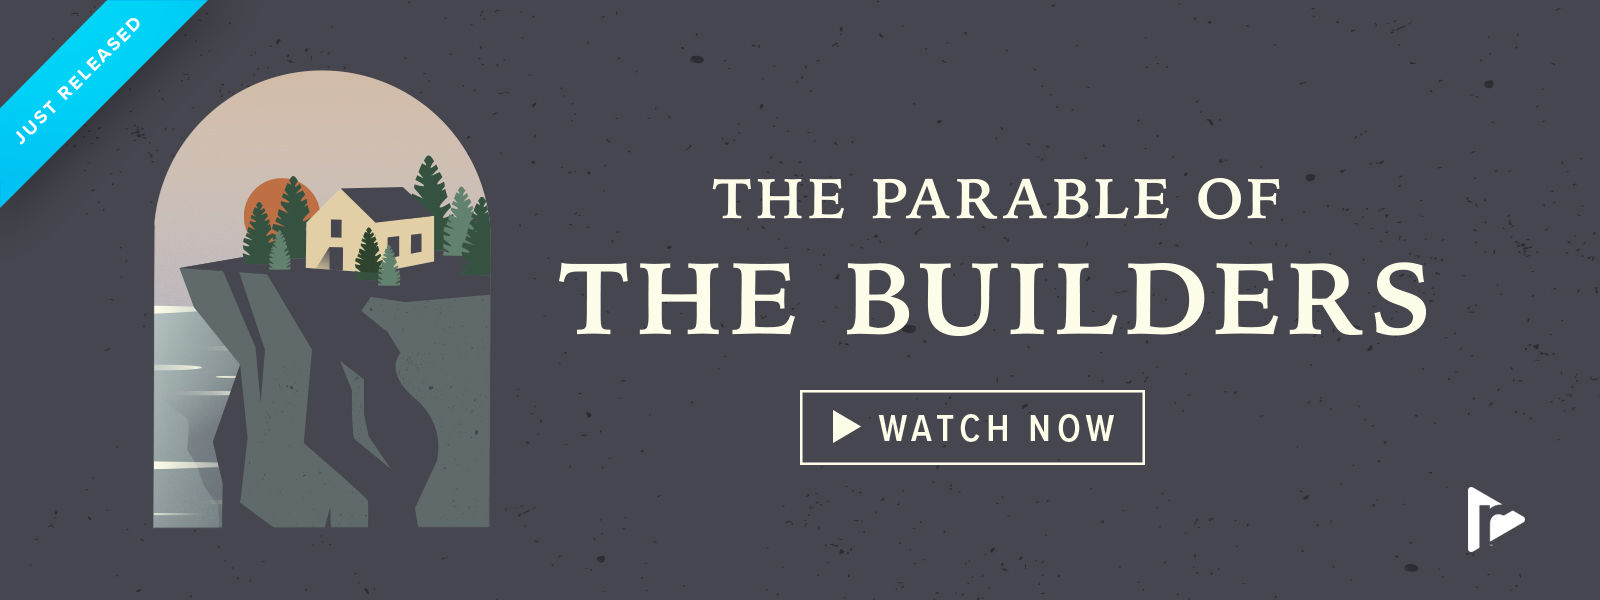 The Parable of the Builders